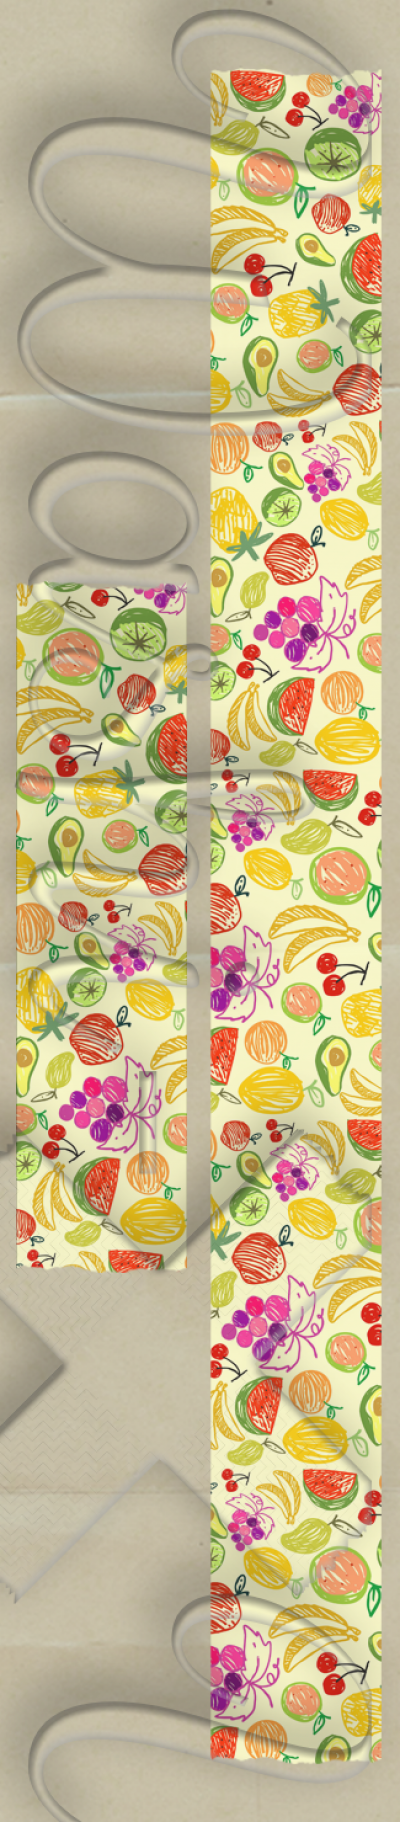 Painted fruits patterned washi tape